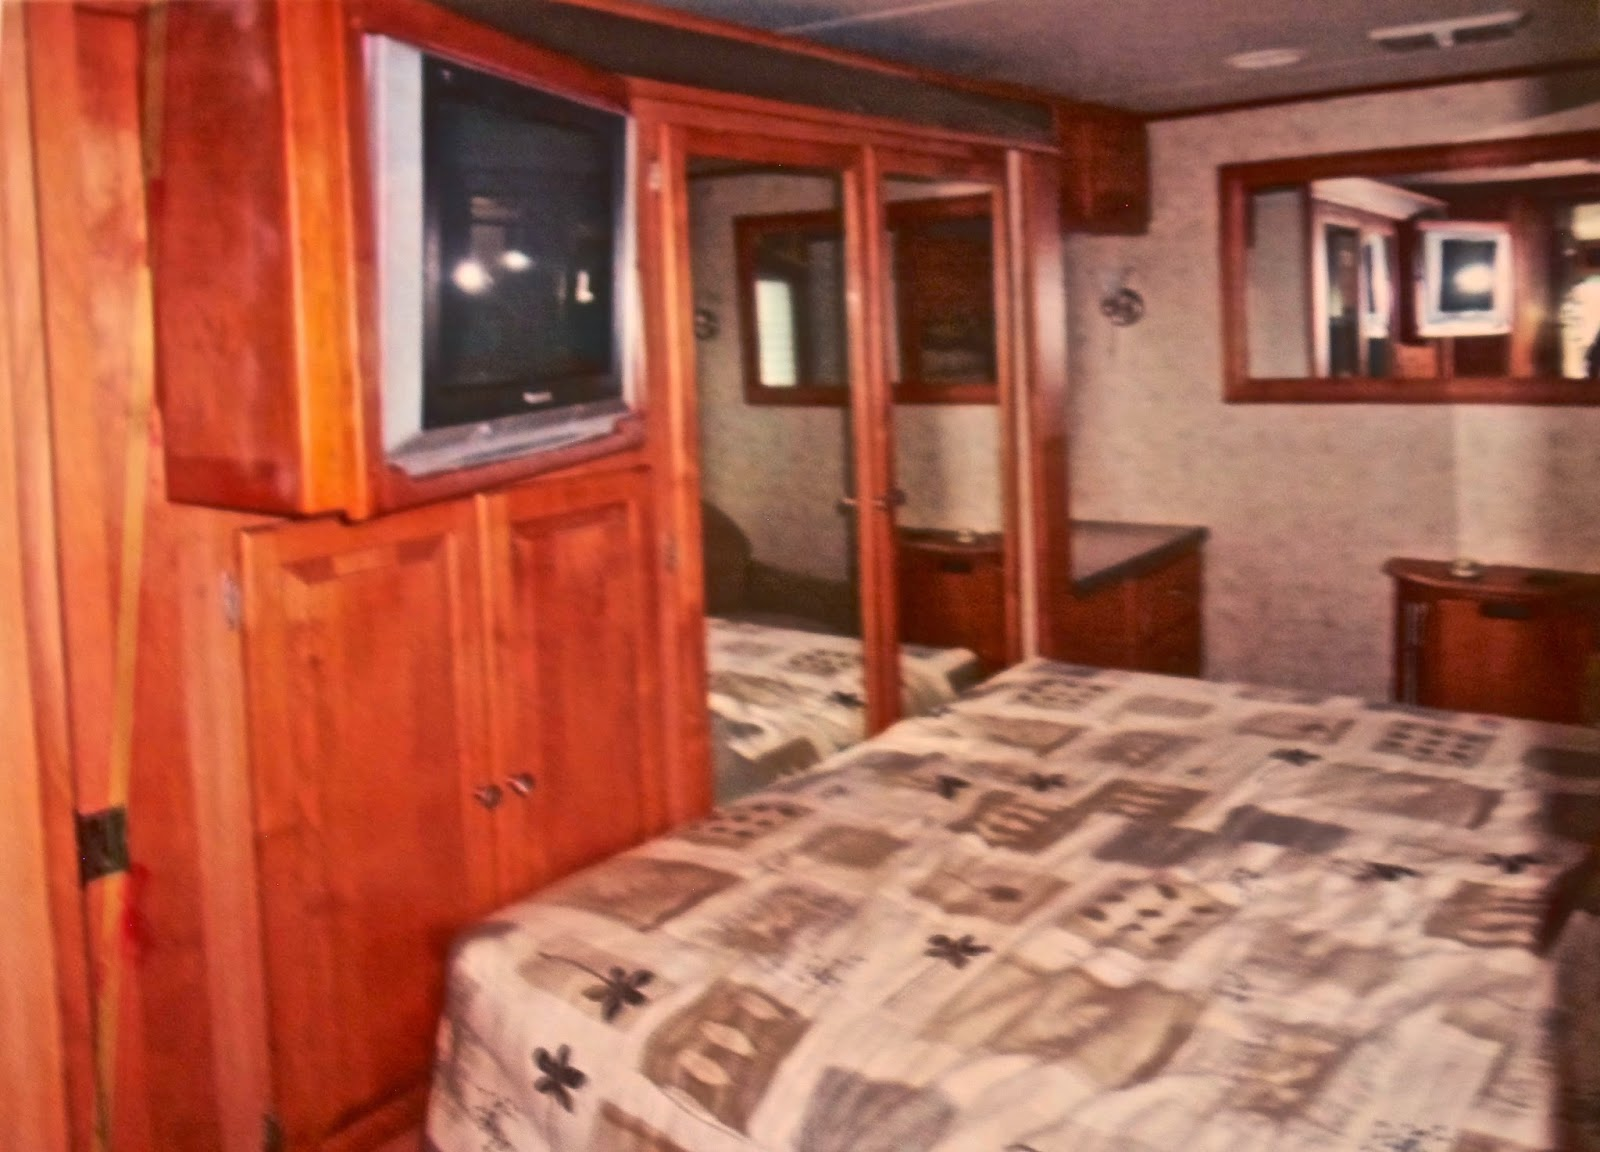 Champagne Wishes and RV Dreams: Gracelandthe last home